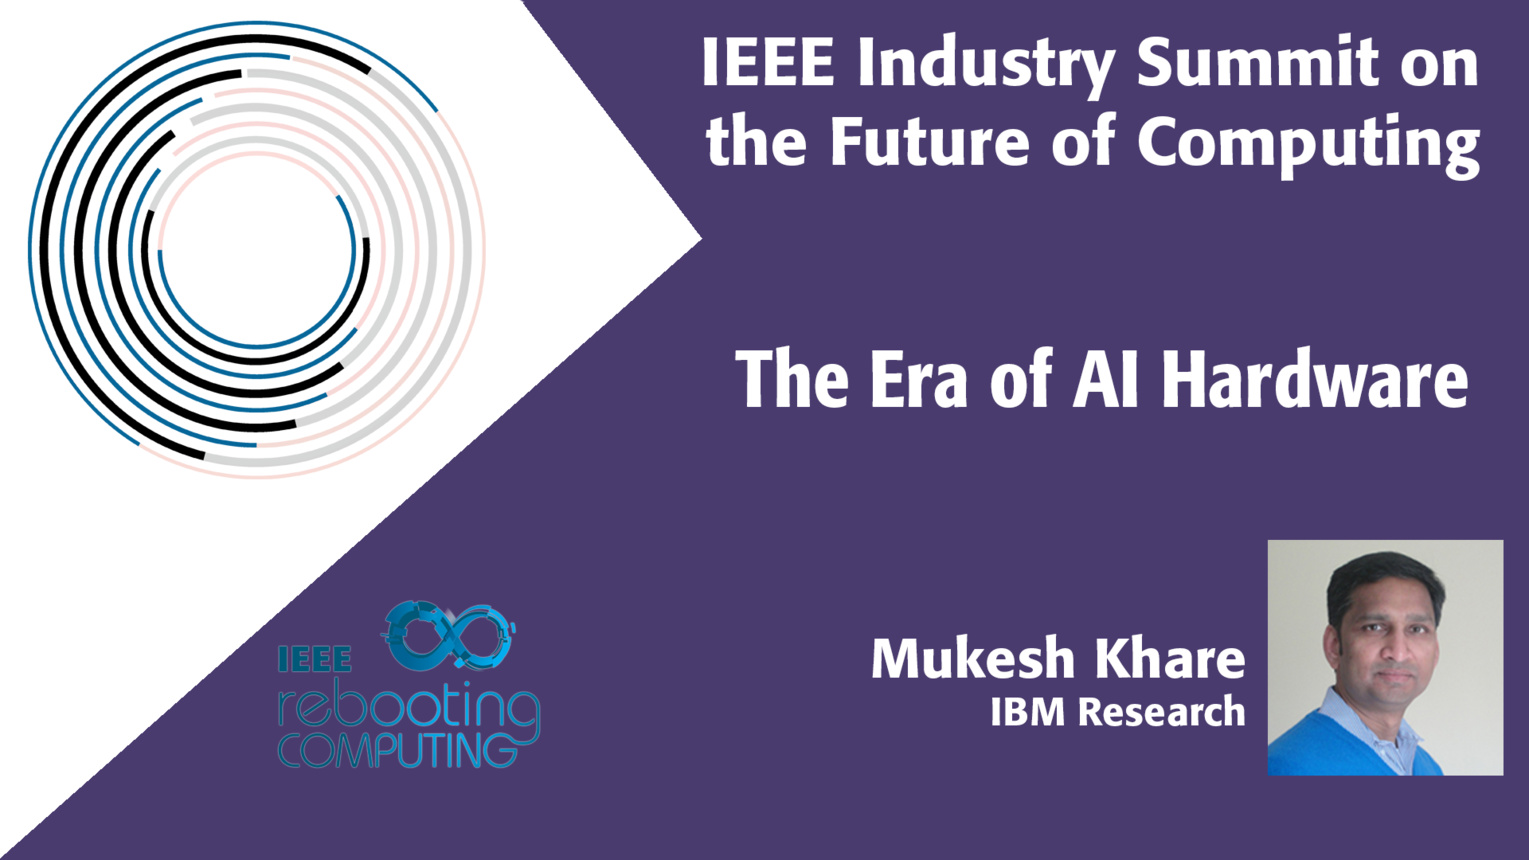 The Era of AI Hardware - 2018 IEEE Industry Summit on the Future of Computing